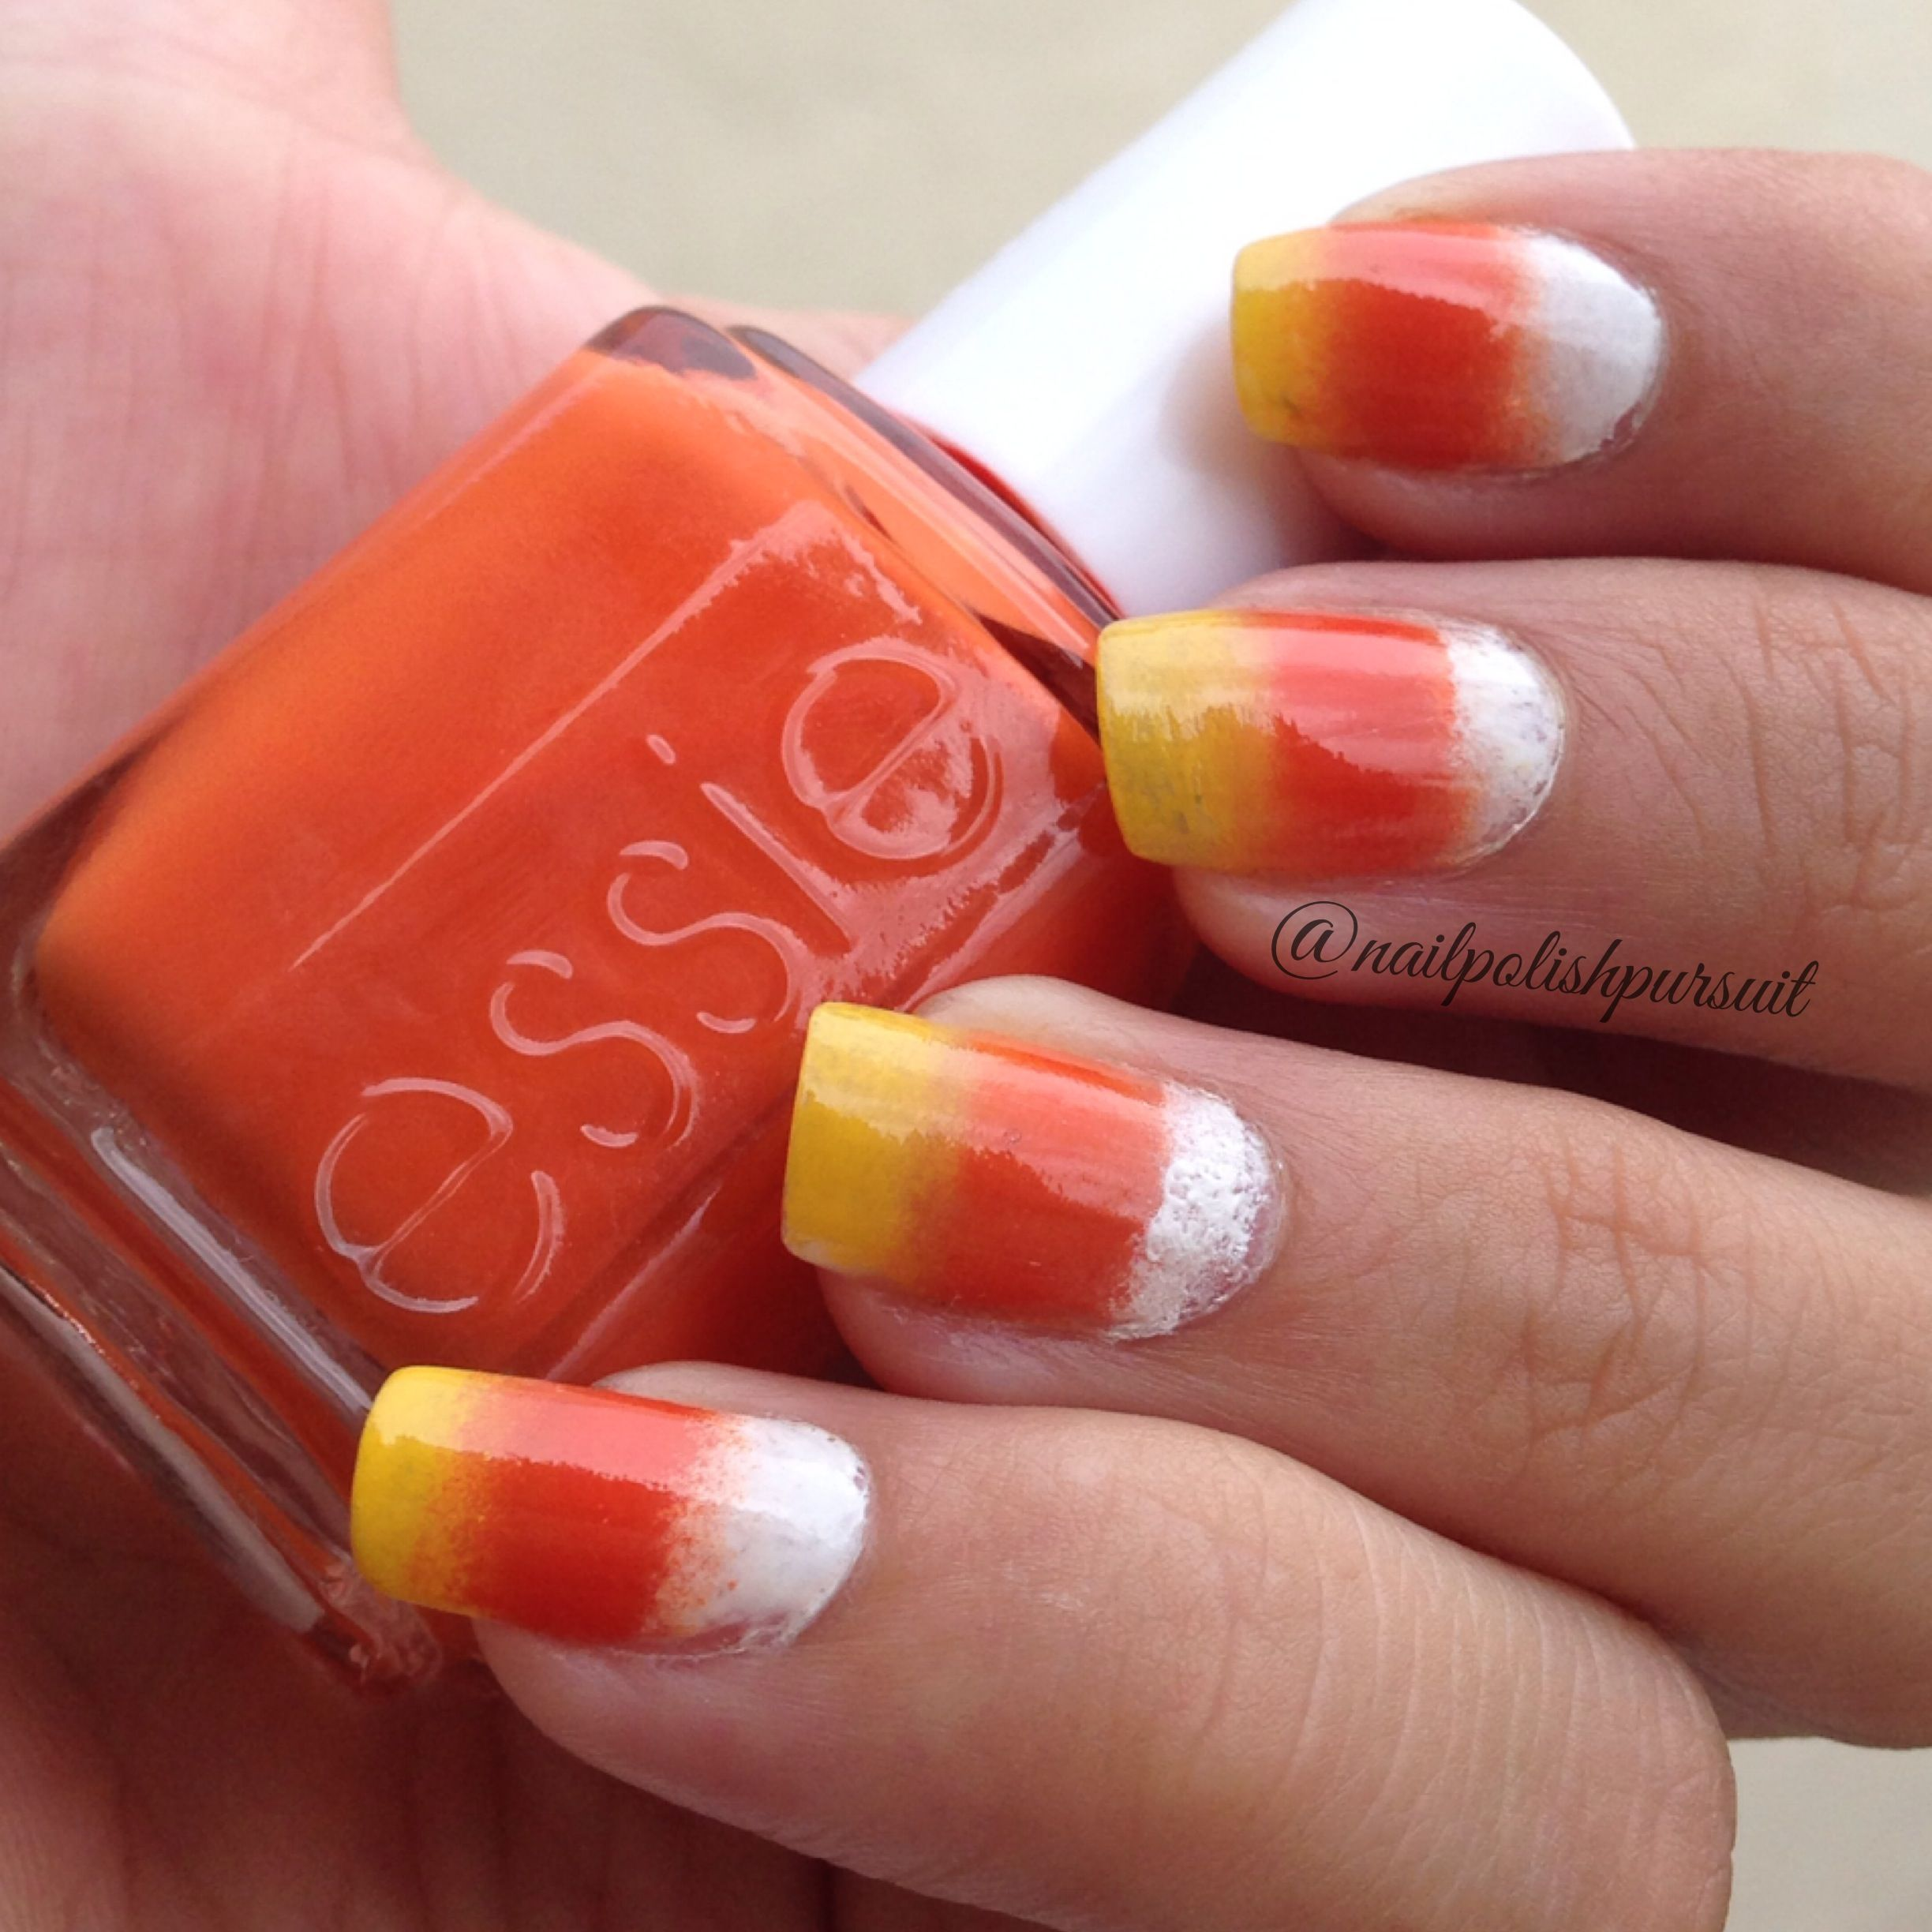 Candy Corn Nails | Nail polish, Cute nail designs, Candy ...